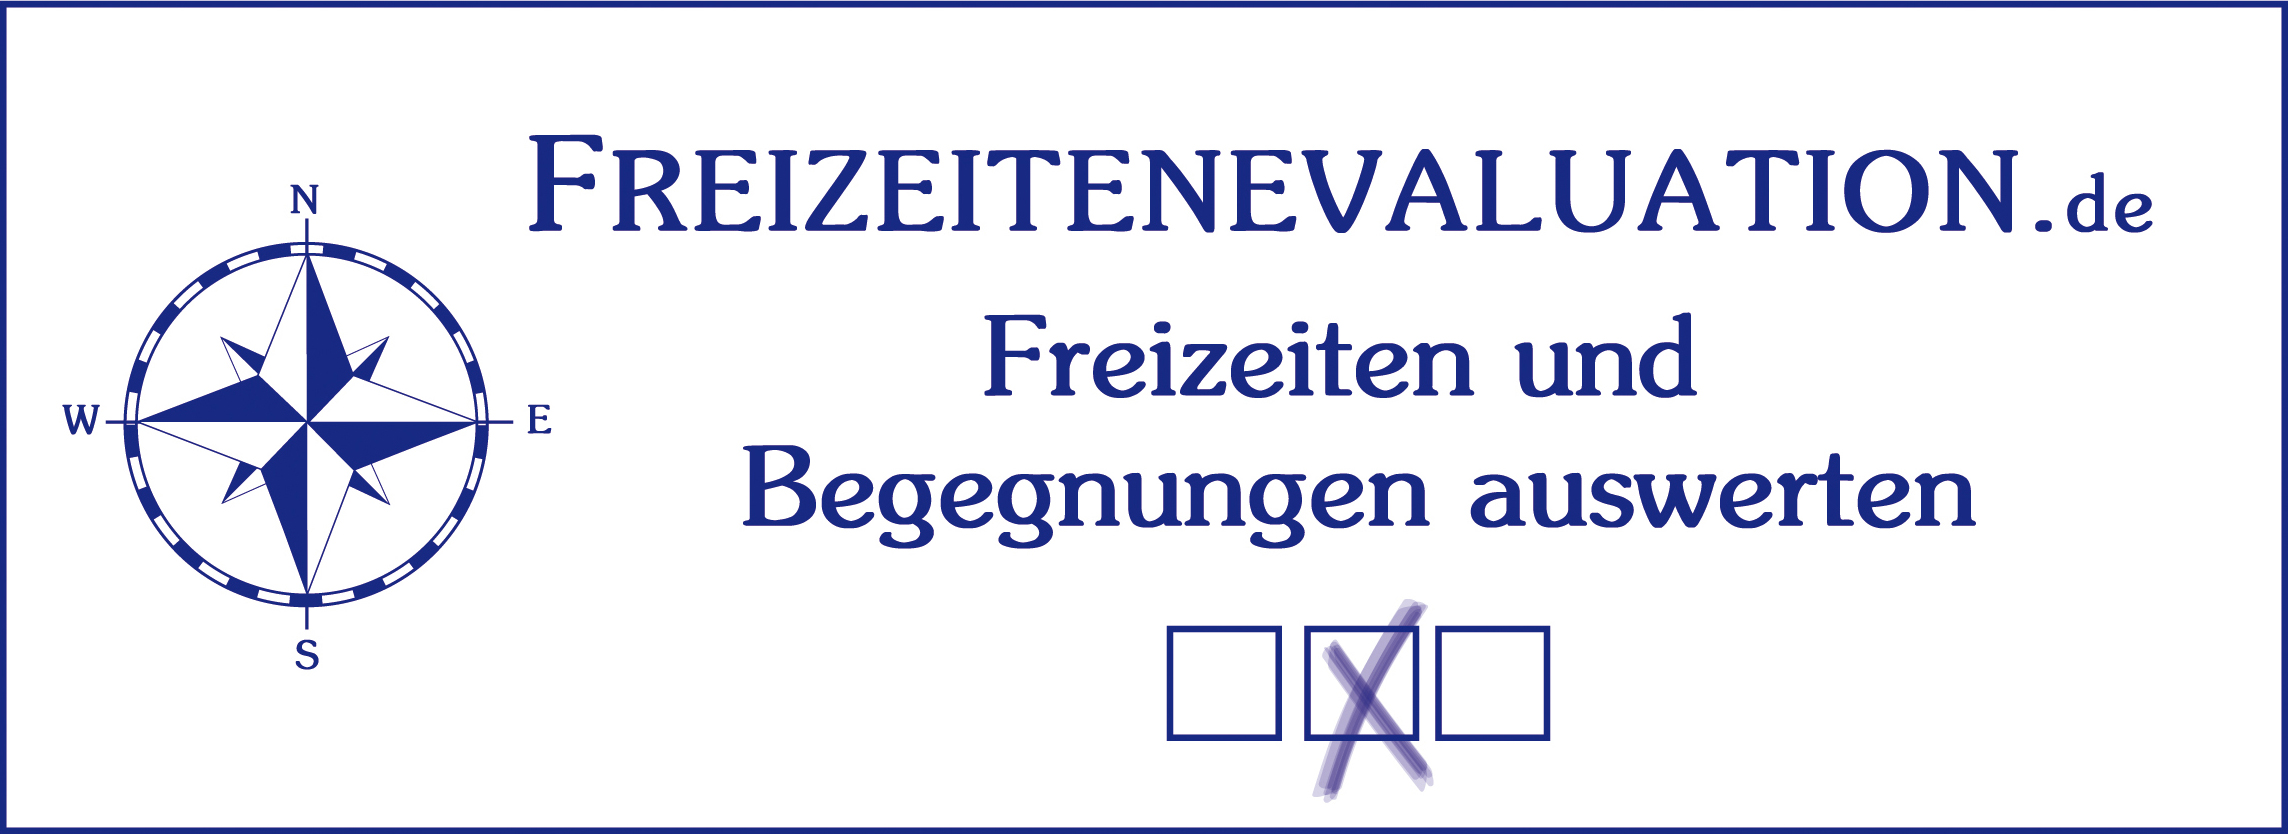 Freizeitenevaluation